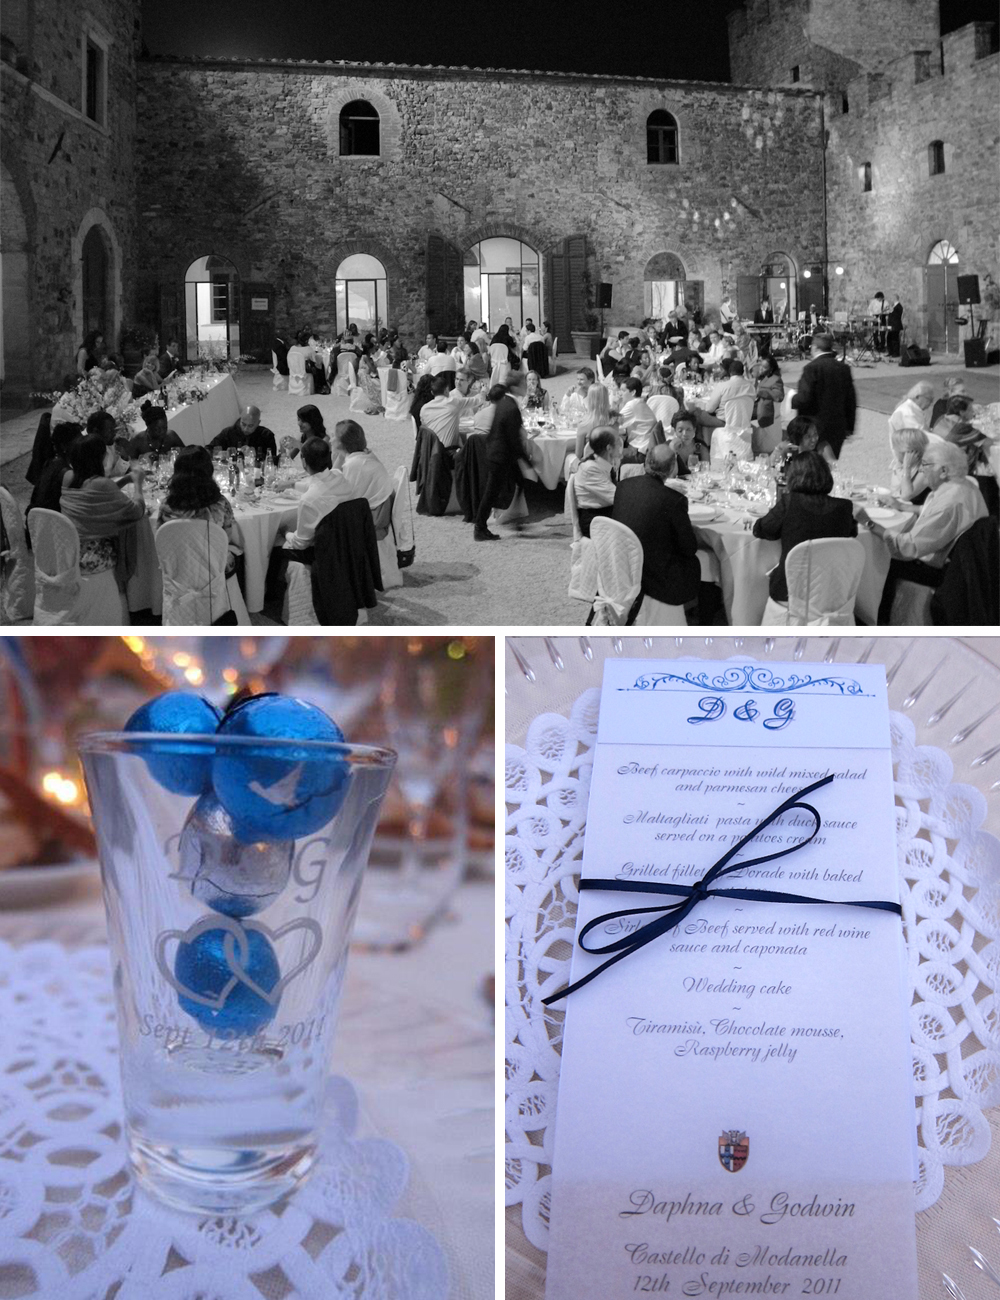 TUSCANY CASTLE WEDDING ITALY 5